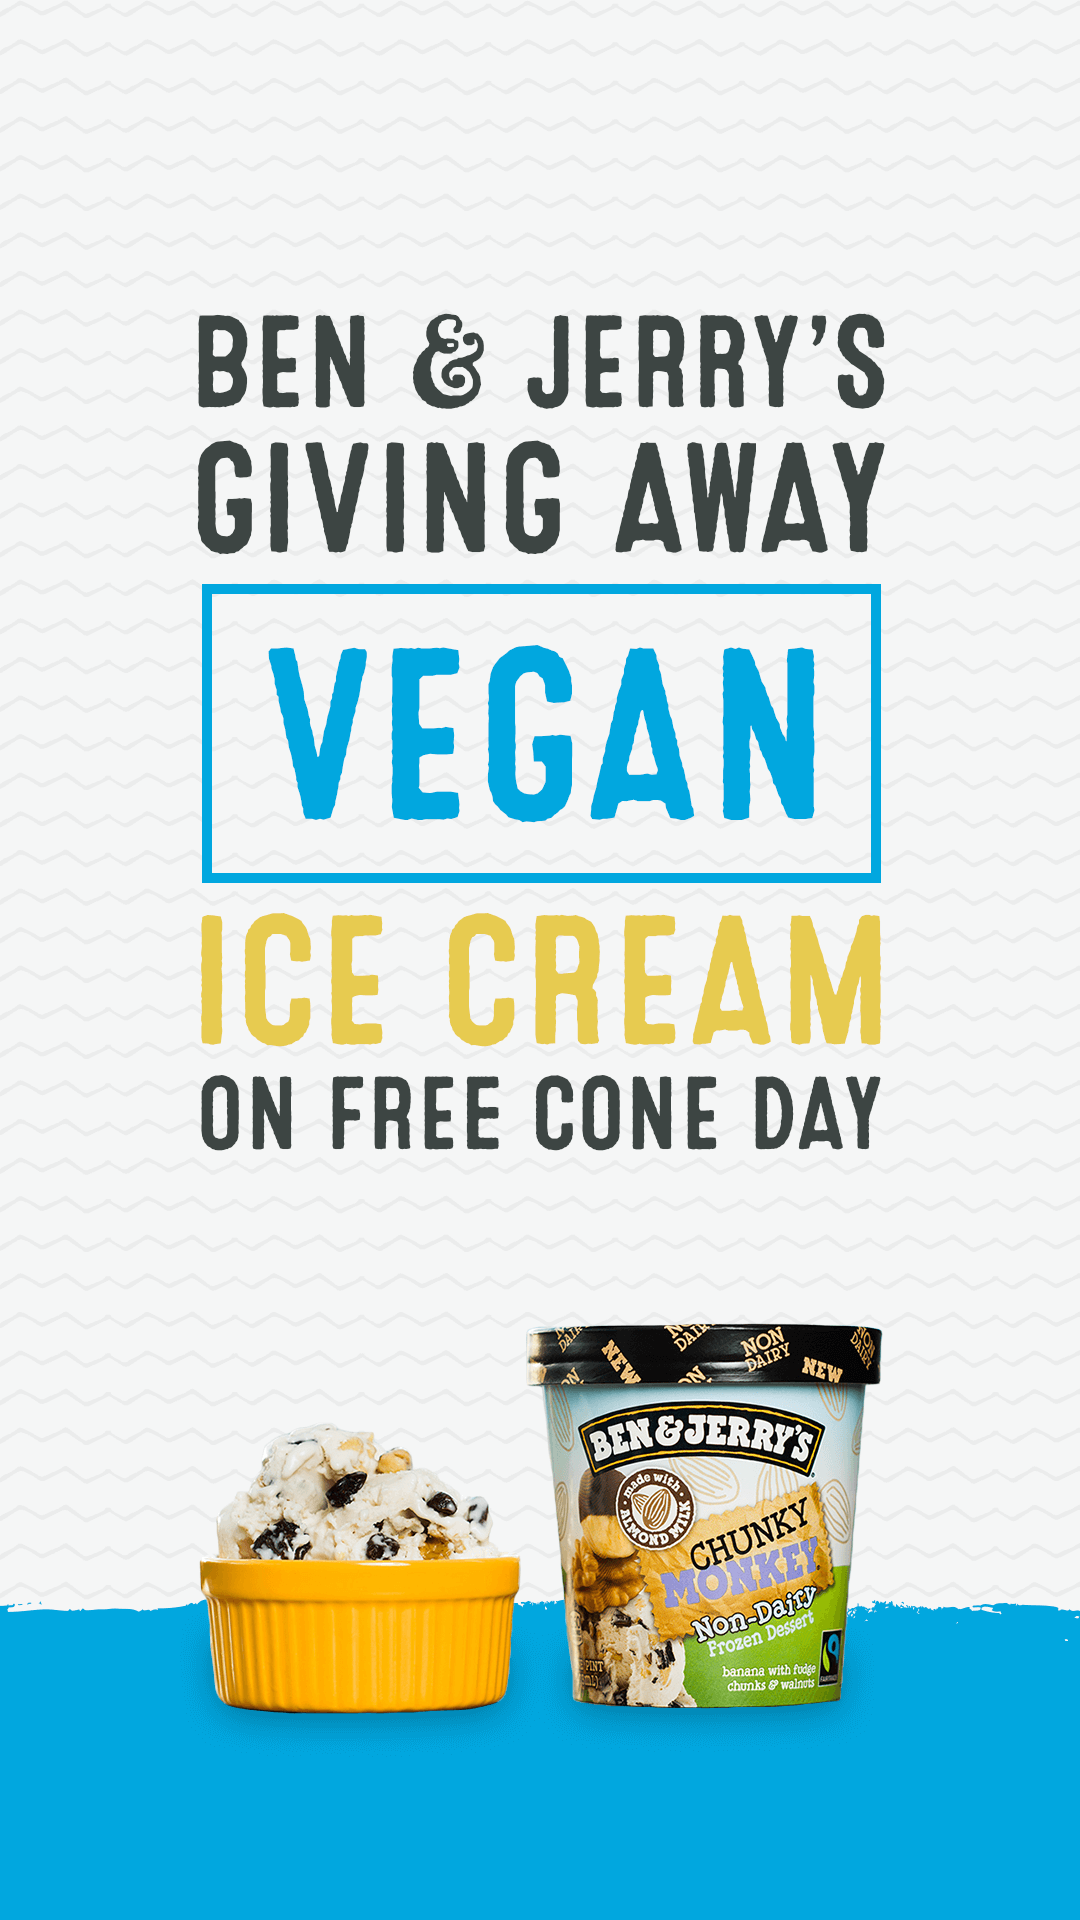 Ben & Jerry's Giving Away Vegan Ice Cream on Free Cone Day